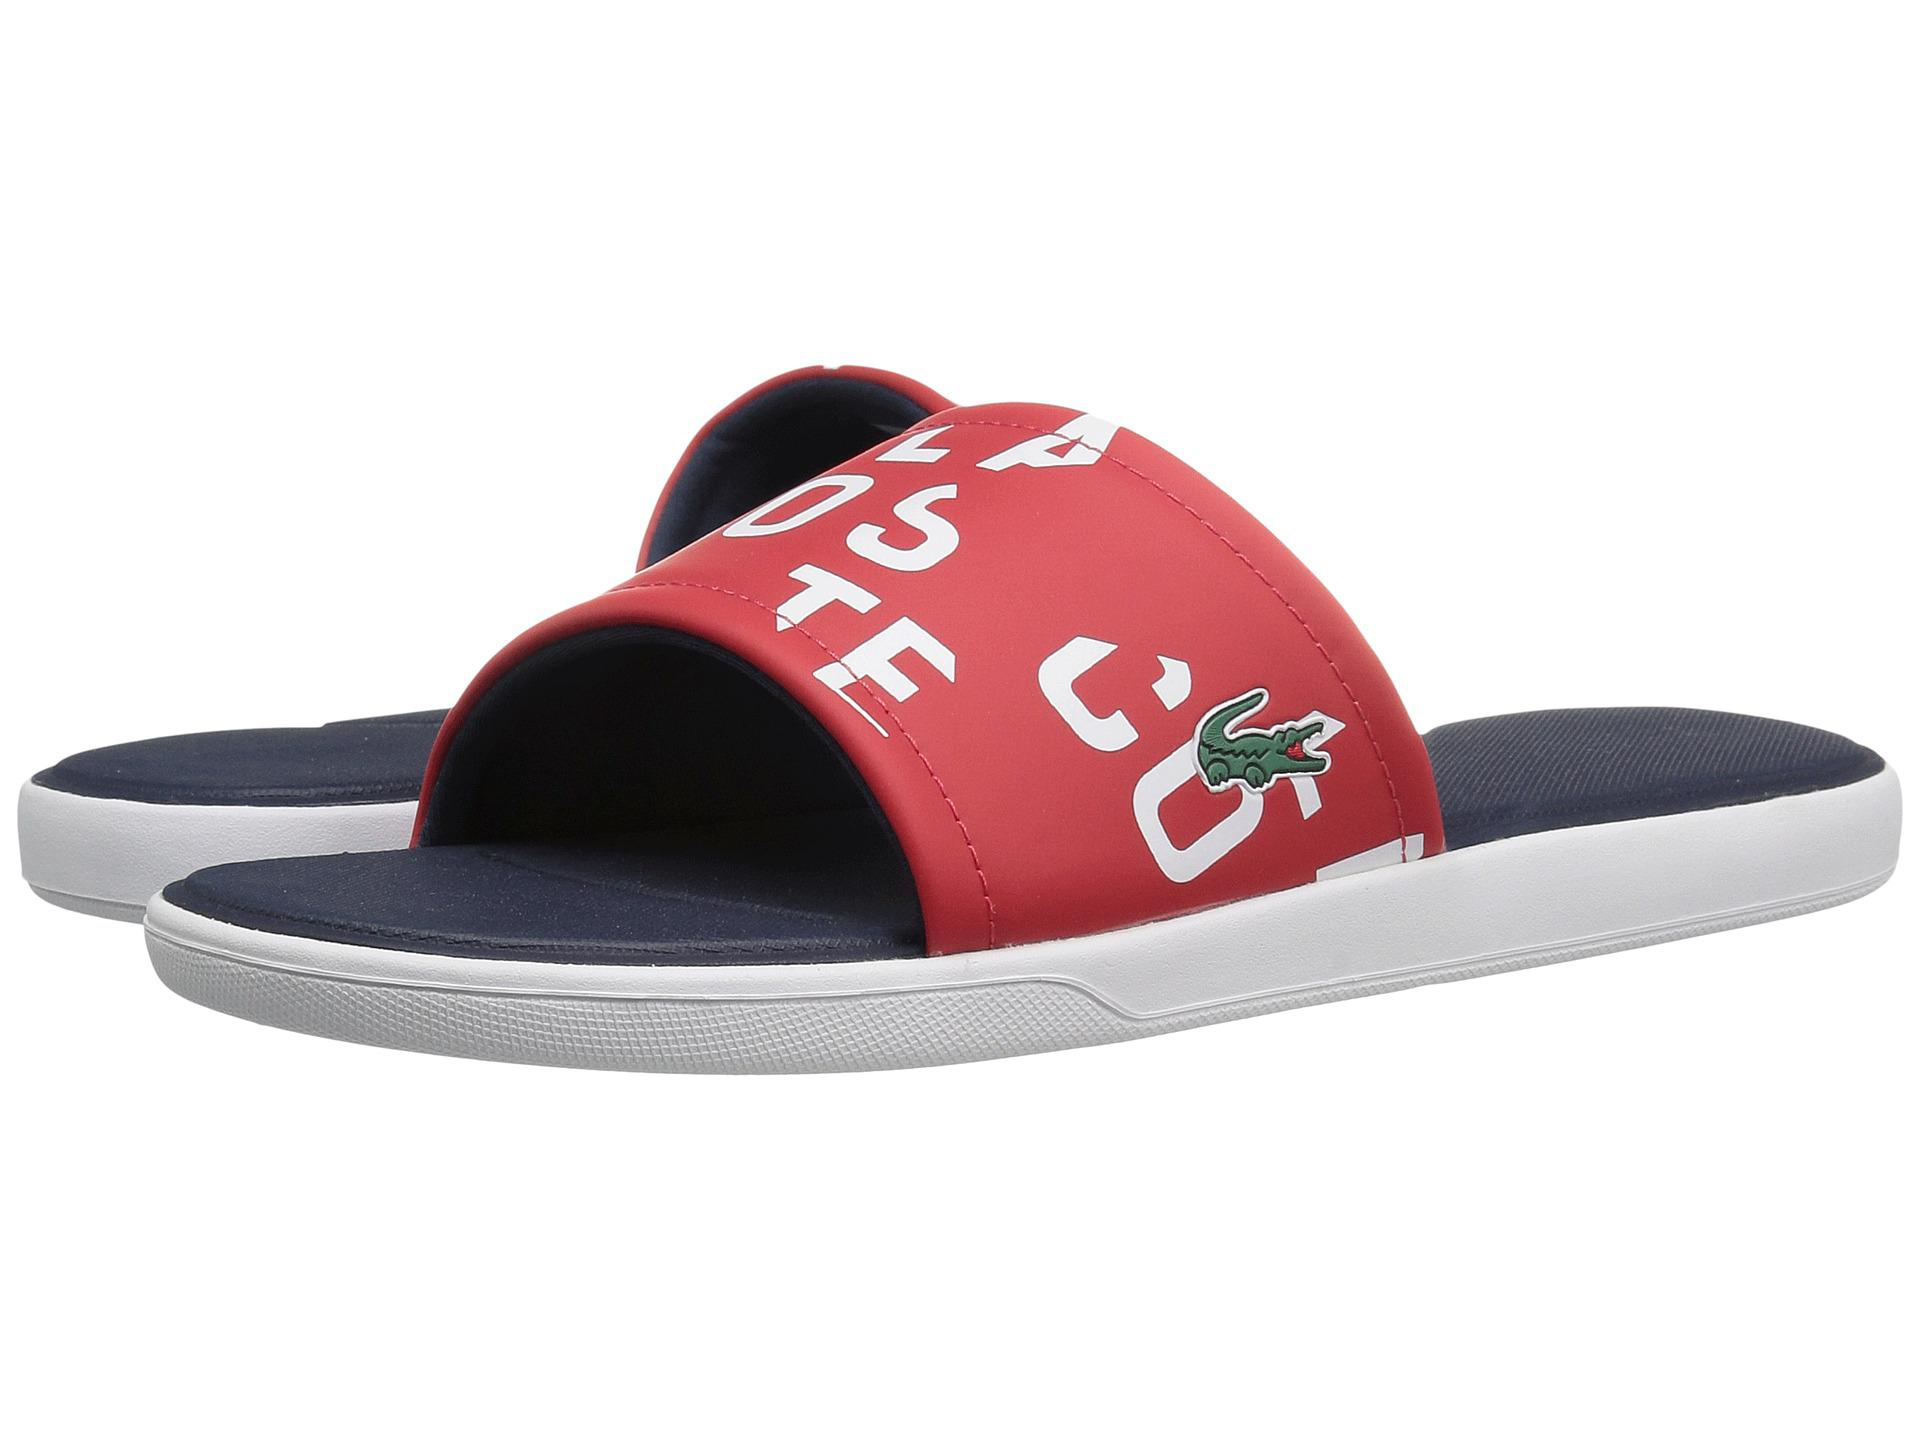 483eeccf16 Lyst - Lacoste L.30 Slide 117 2 Cam in Red